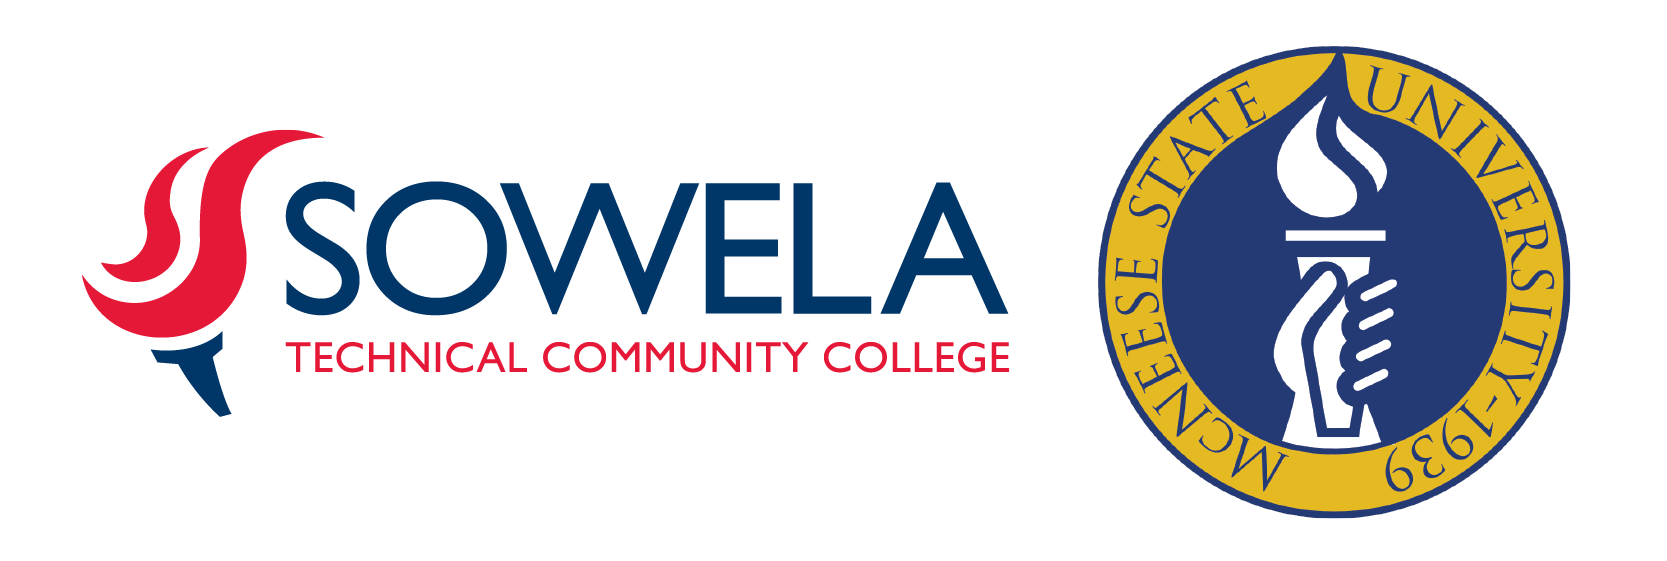 Sowella Technical Community College and McNeese State University logos